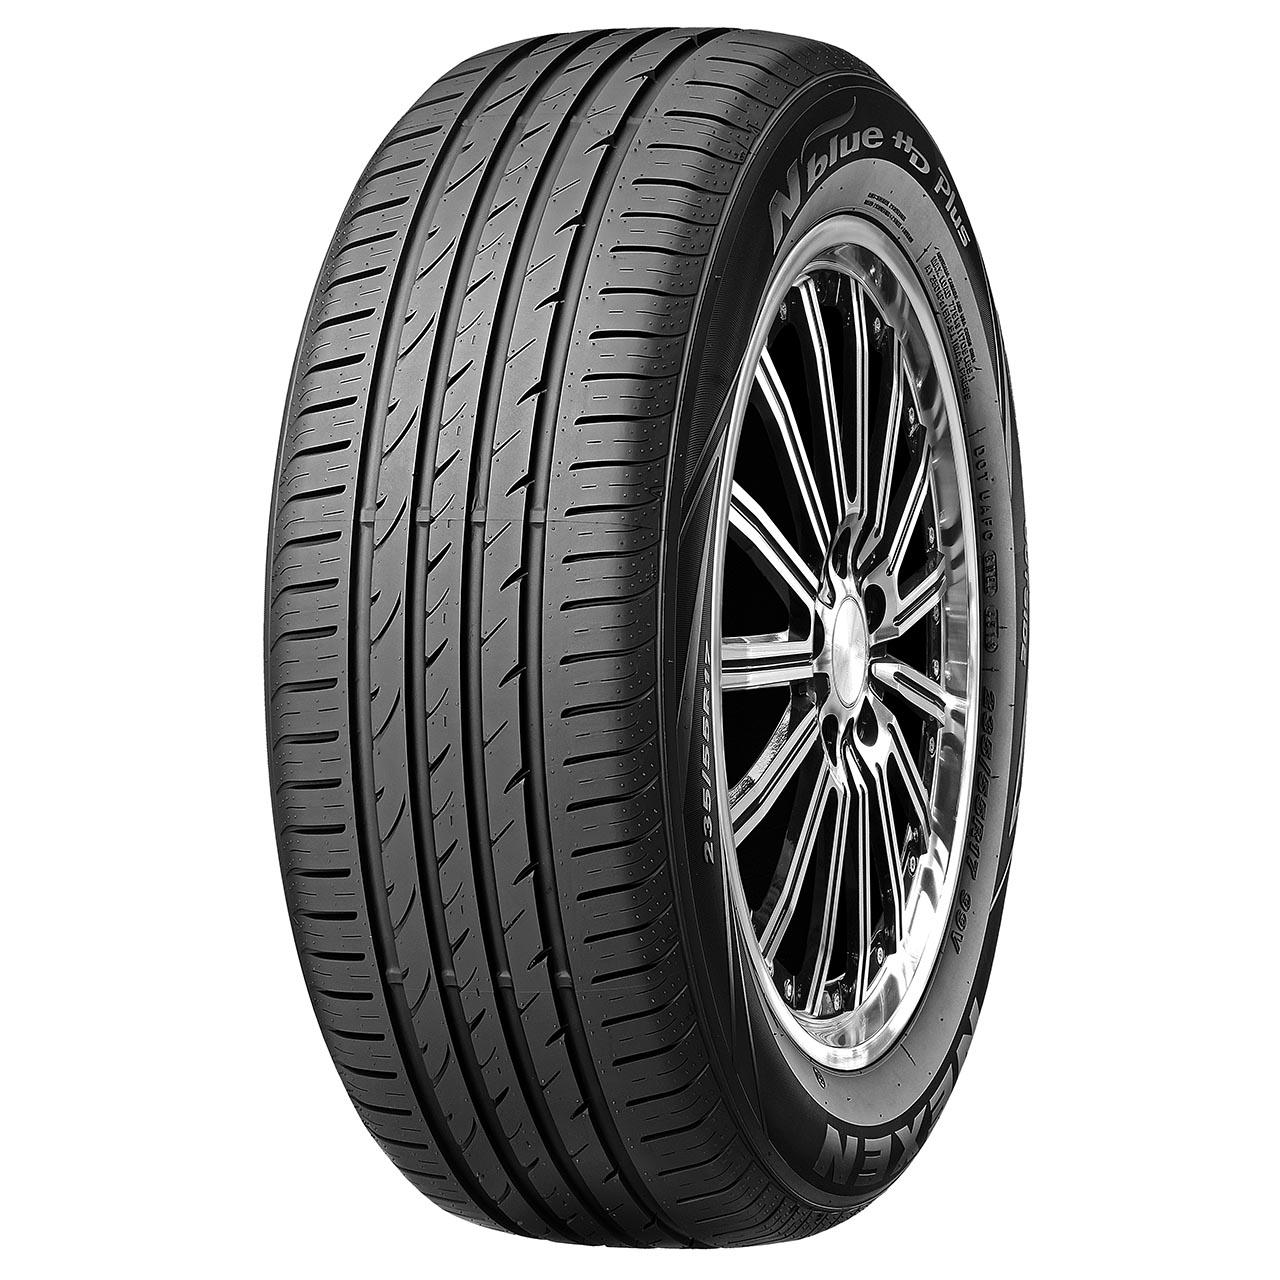 Nexen N Blue HD Plus 175/65R14 86T XL